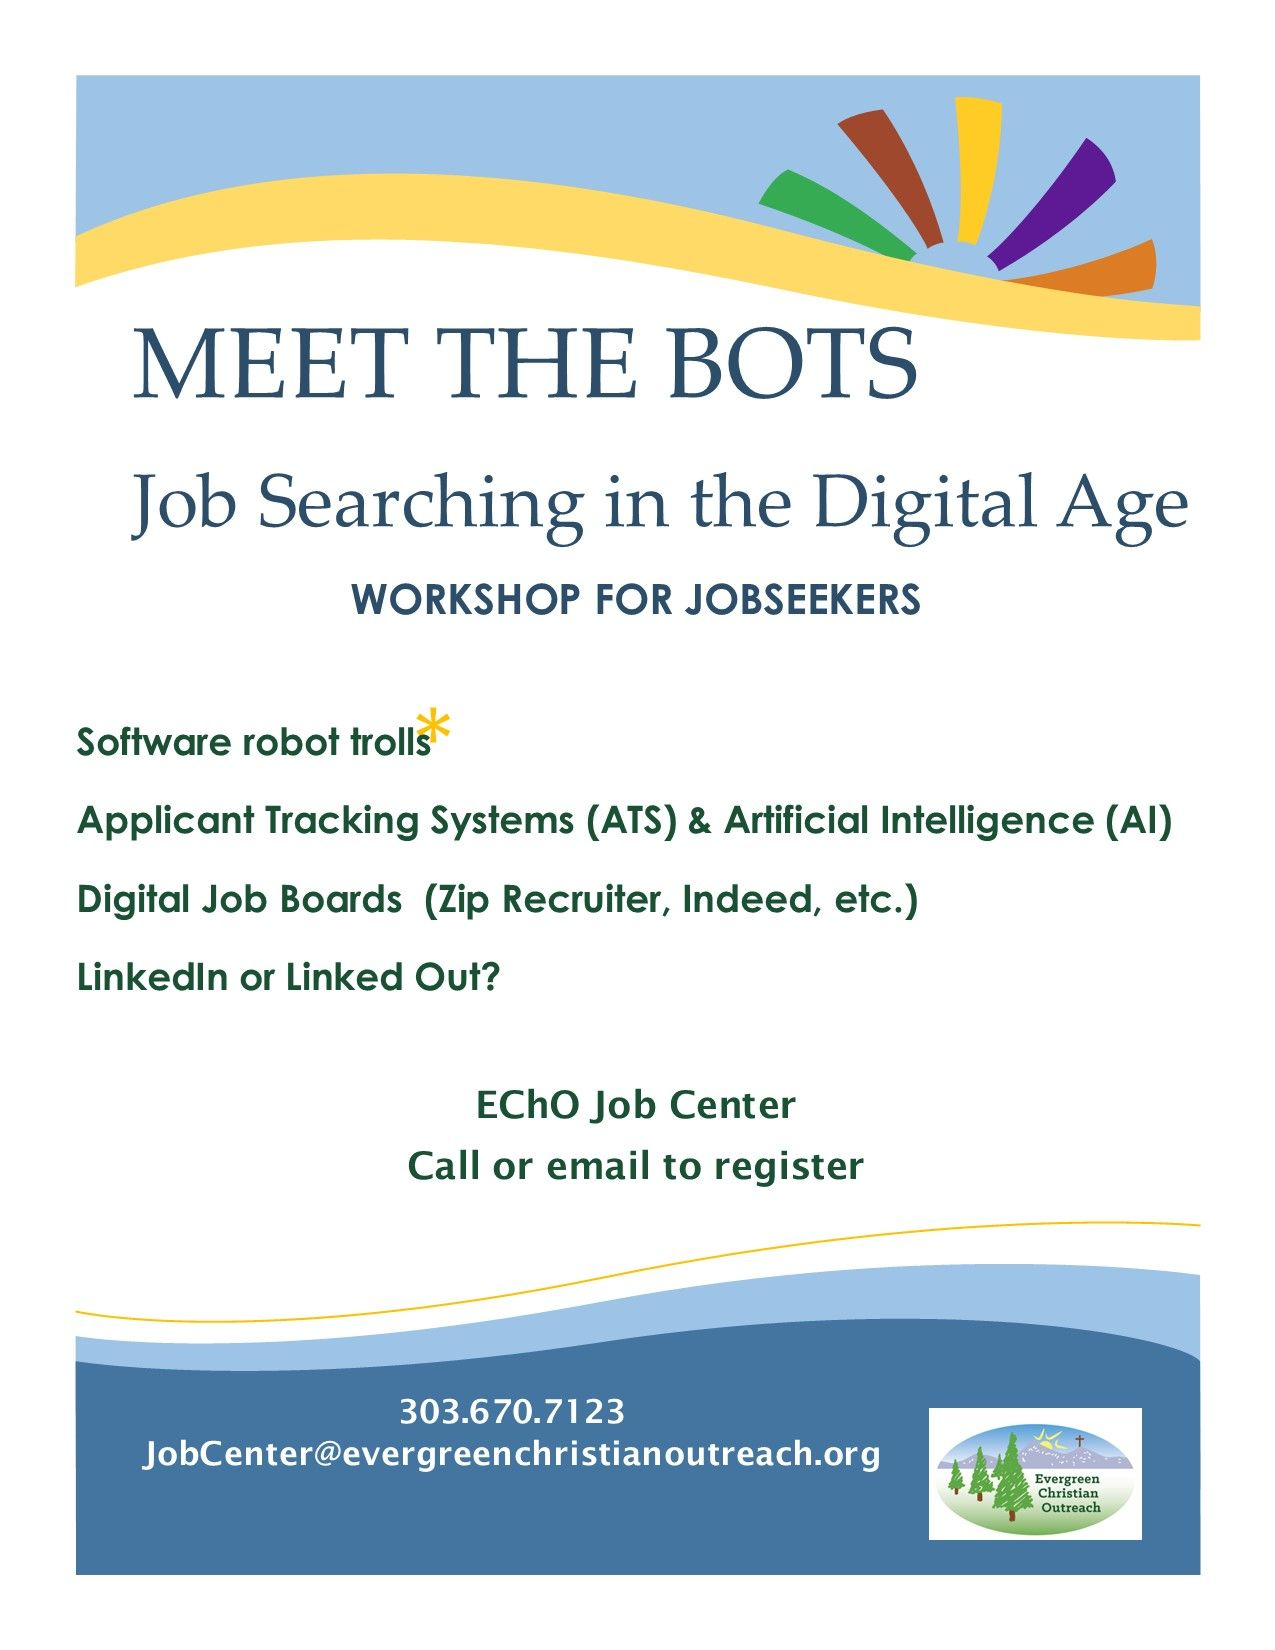 Meet the Bots: Job Searching in the Digital Age